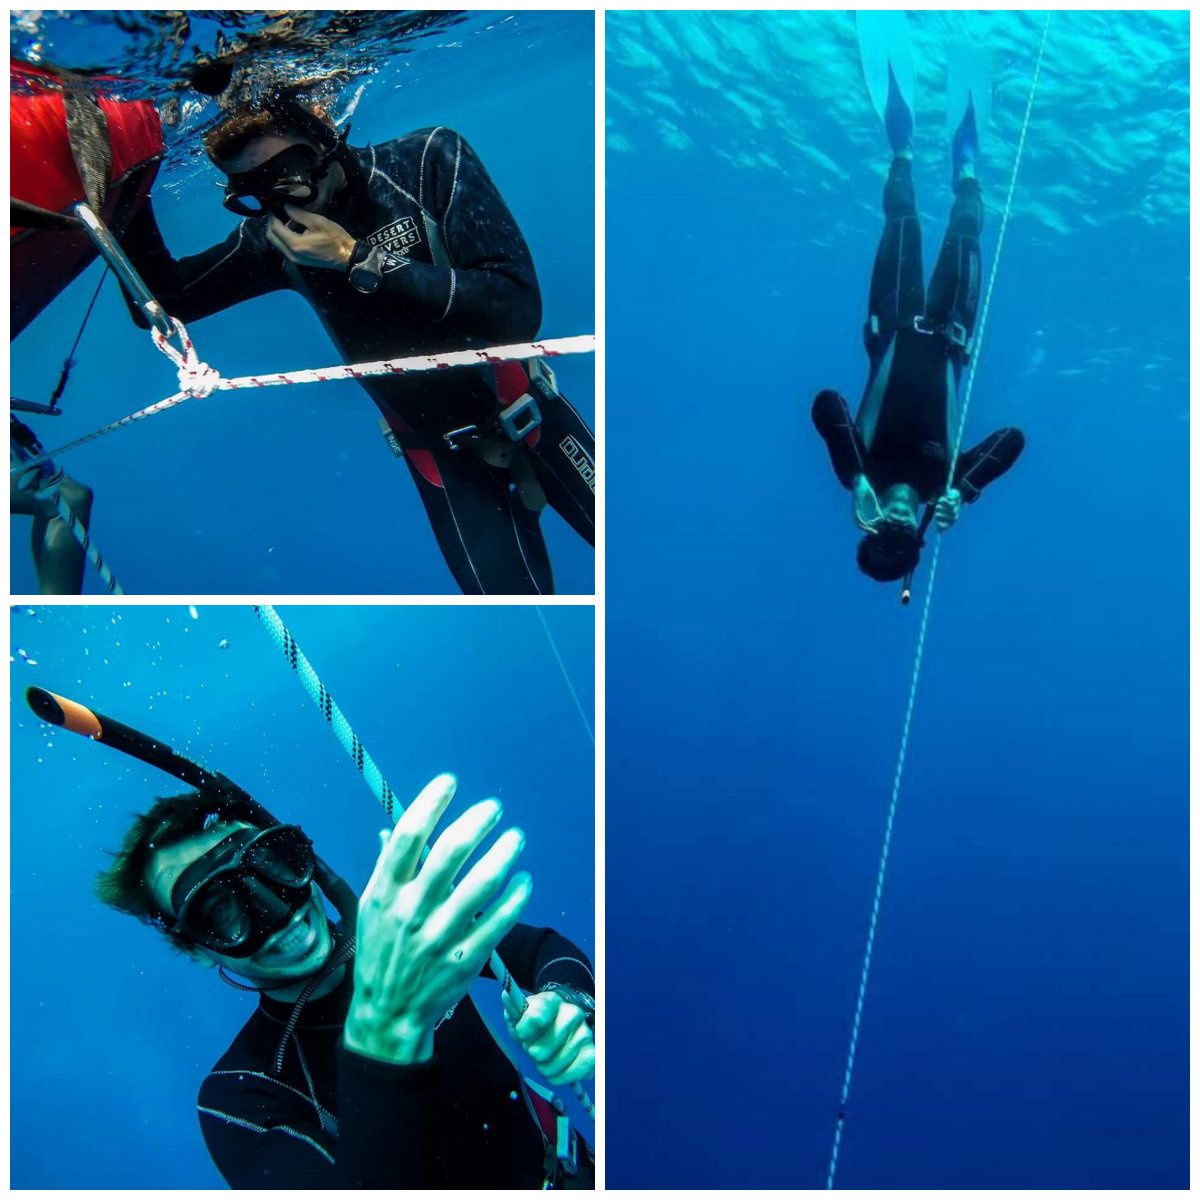 Quentin doing his first dives! - Photos by Peter Wydmuch